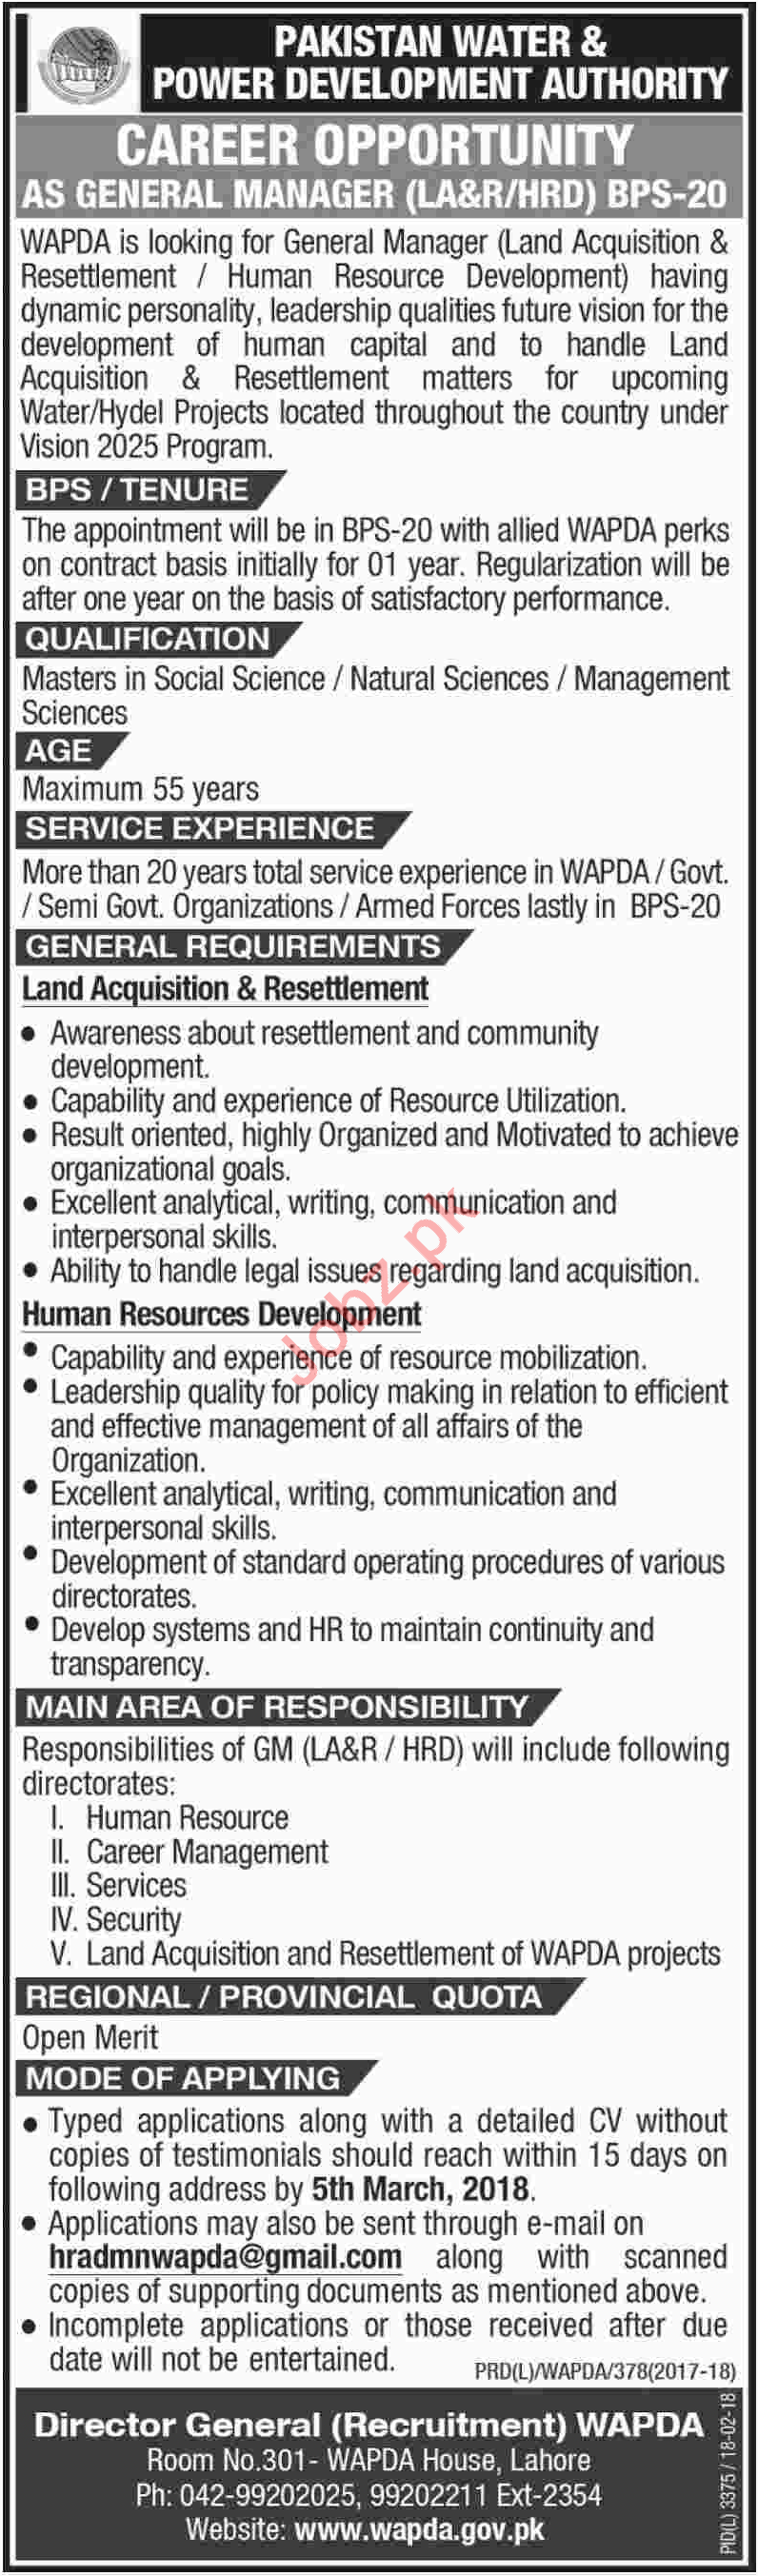 Water & Power Development Authority Lahore Jobs 2018